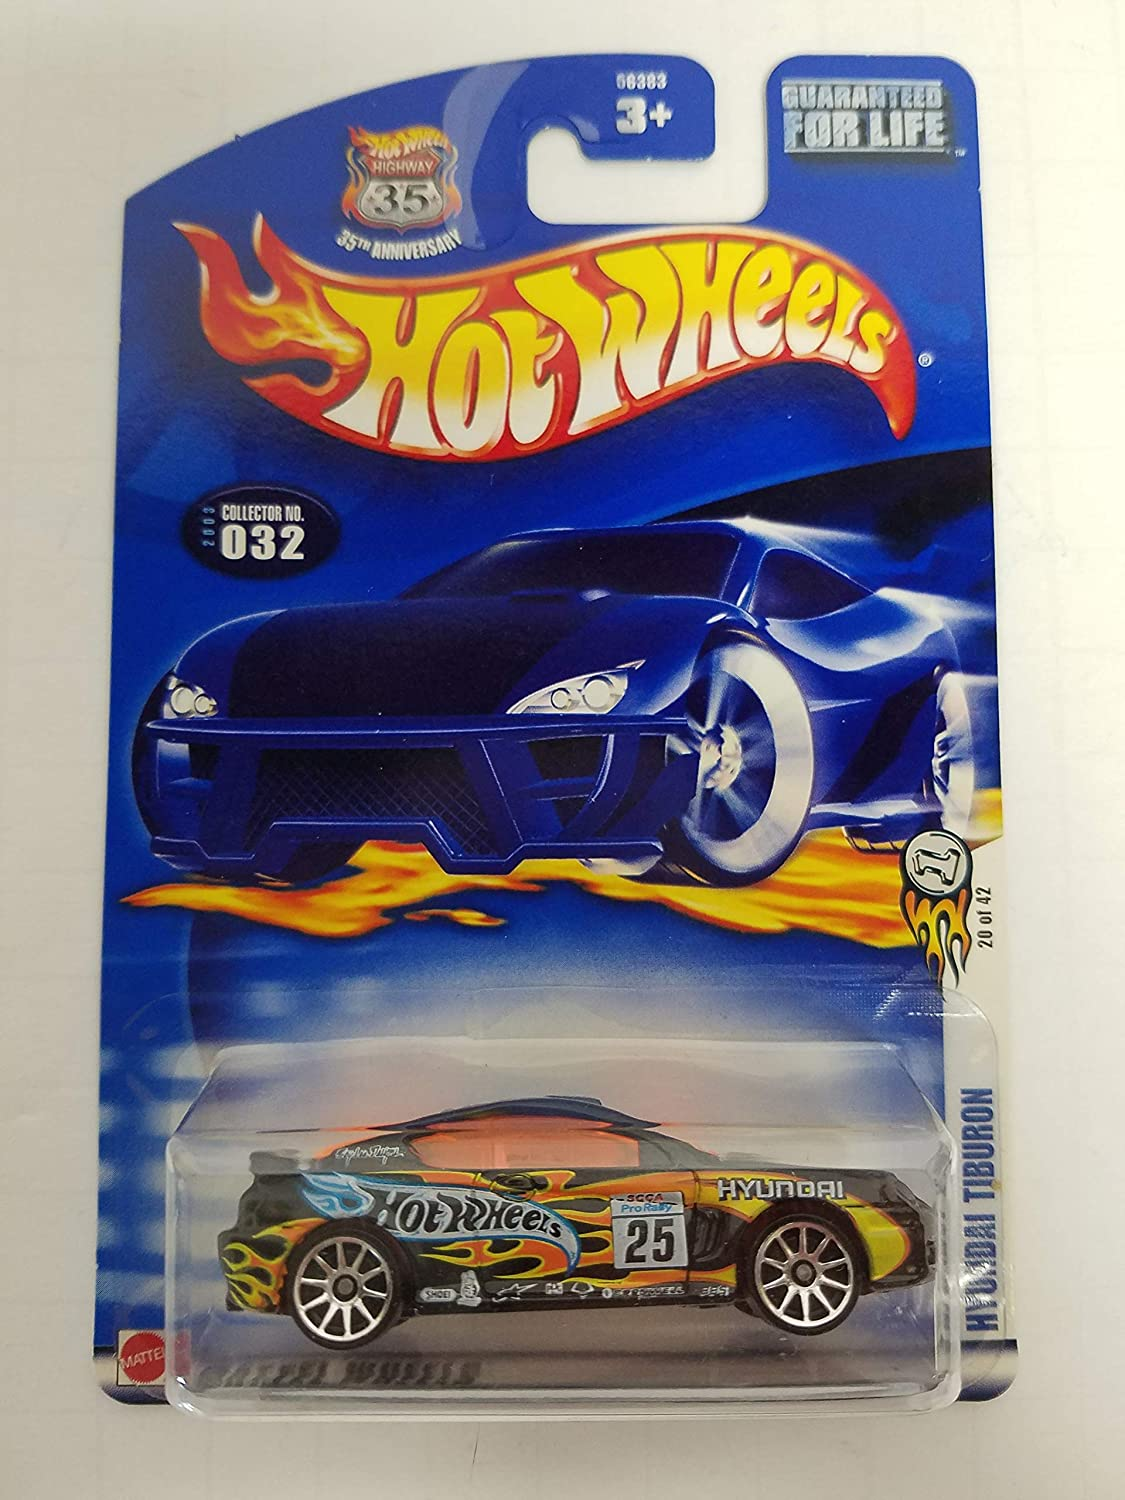 Hyundai Tiburon 2003 First Editions 20 of 42 Hot Wheels NO. 032